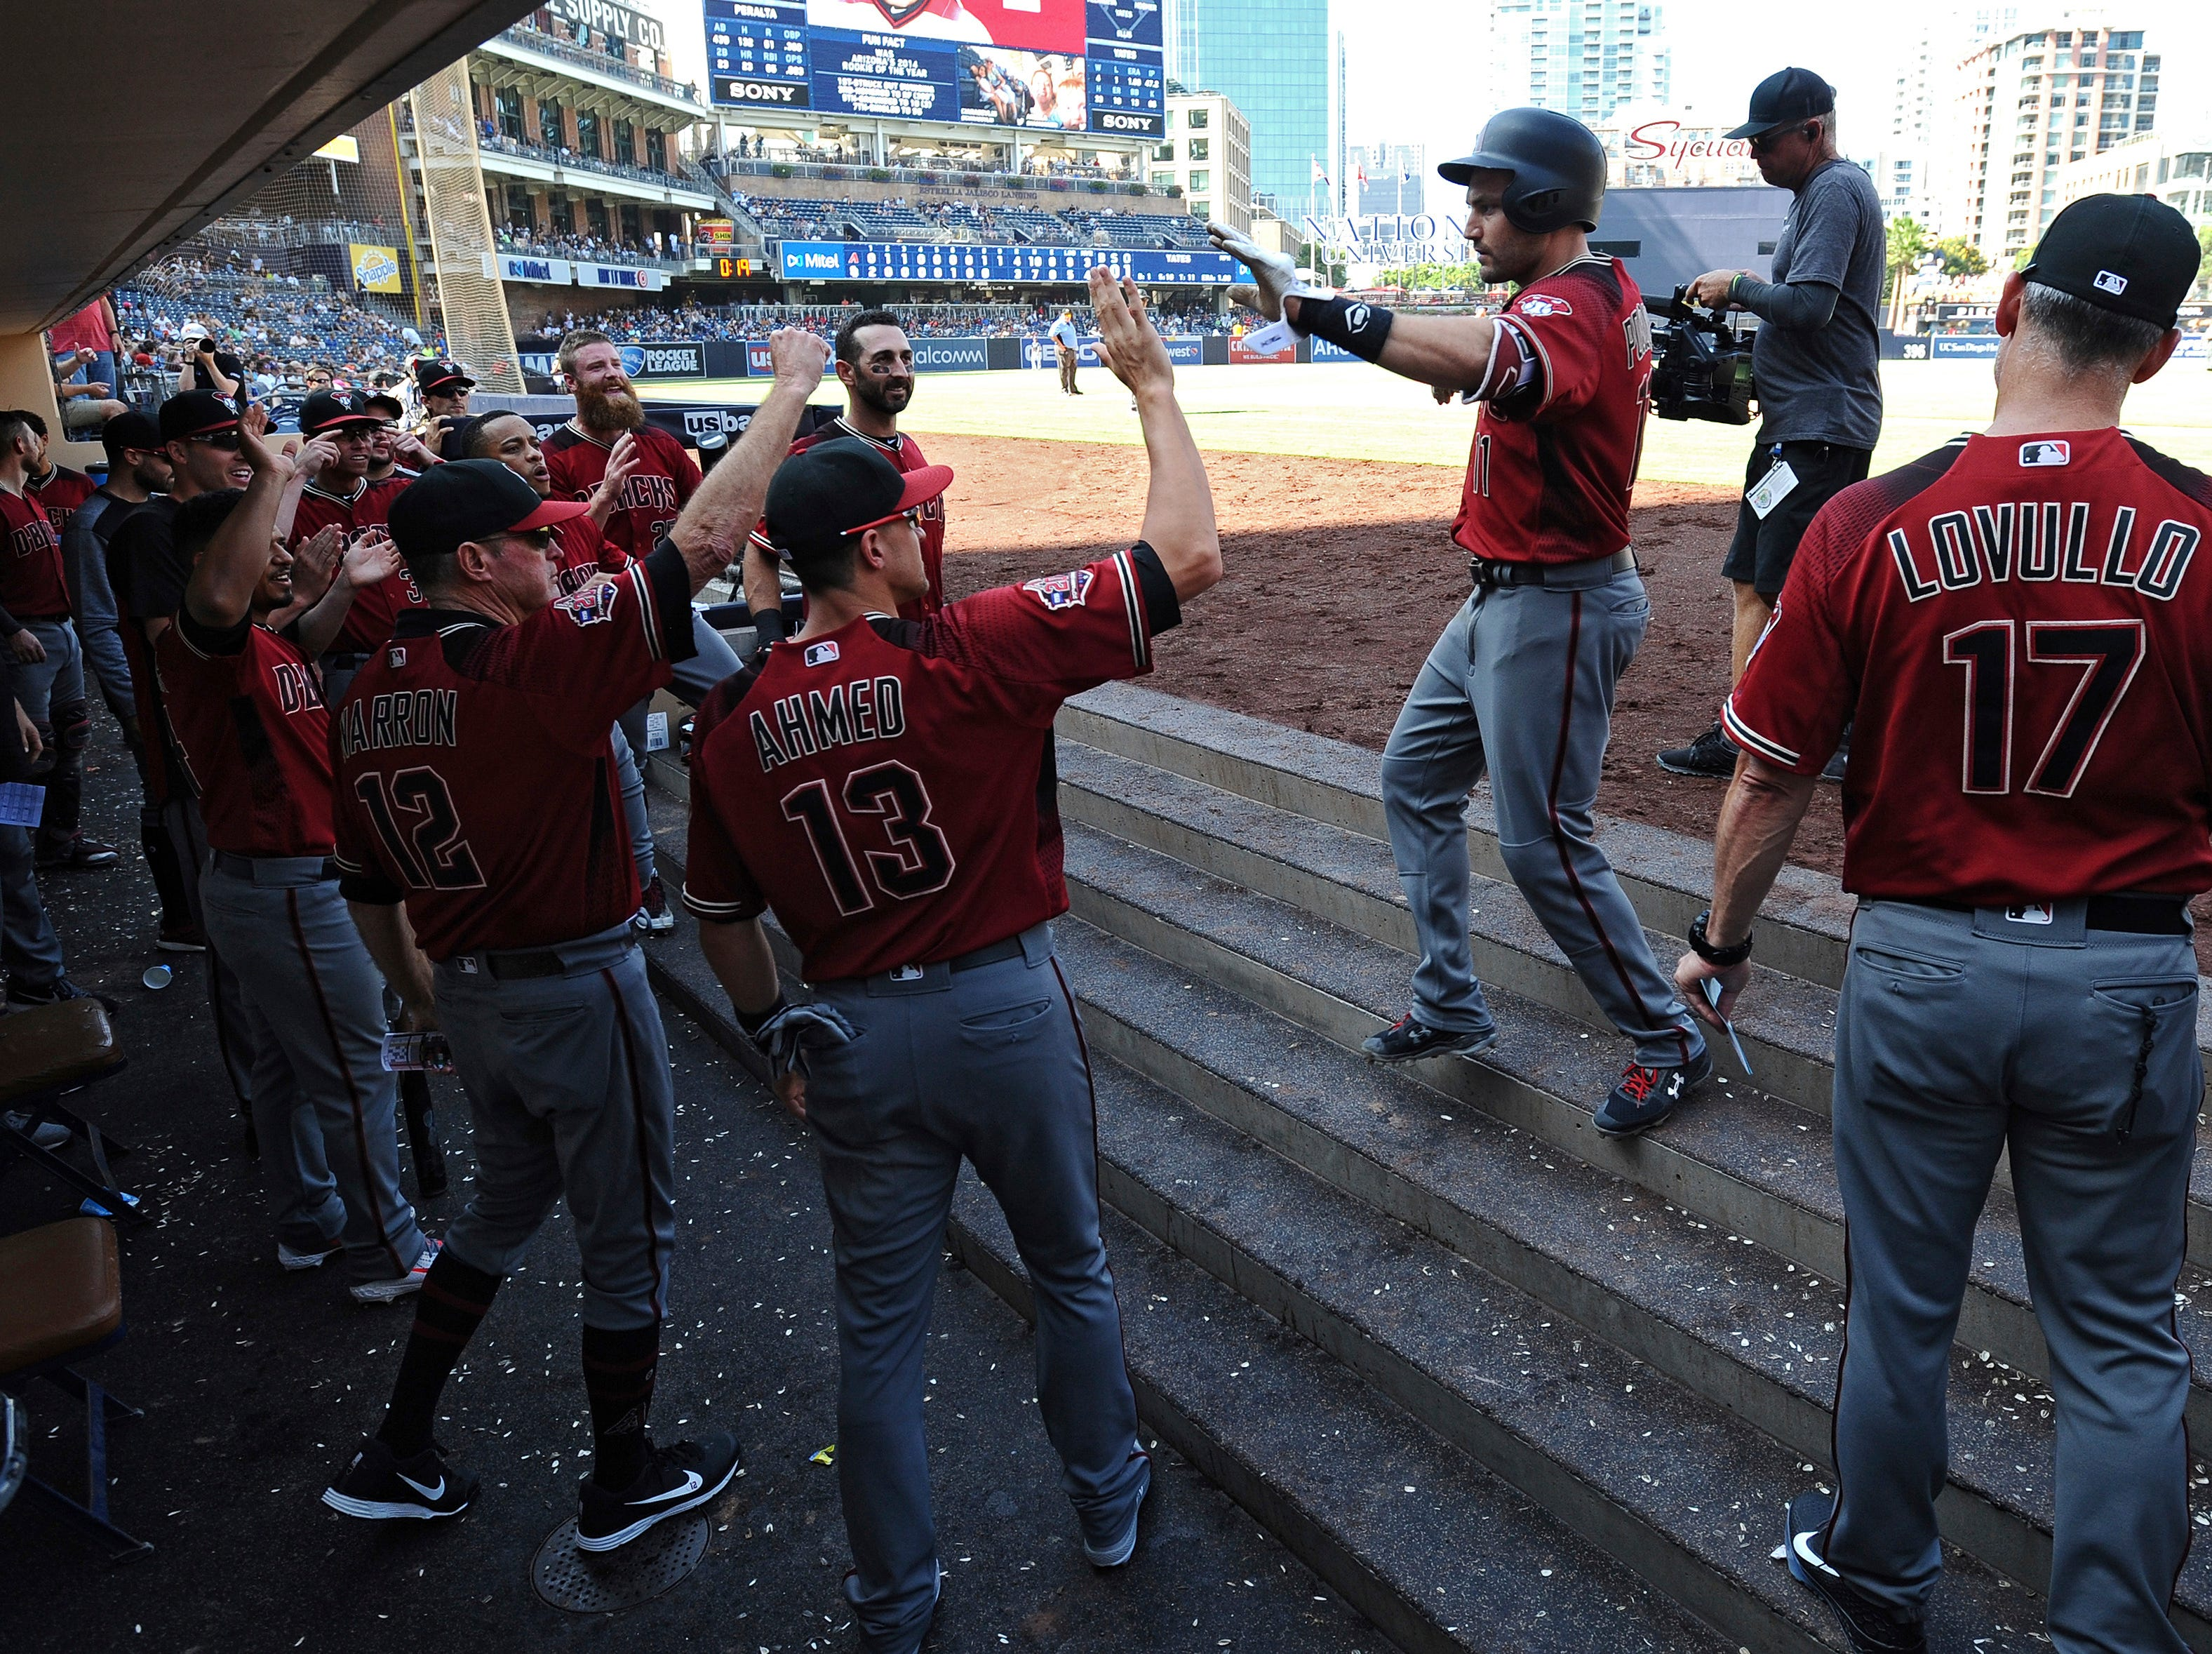 Arizona Diamondbacks center fielder A.J. Pollock, top, is congratulated in the dugout after hitting a home run during the ninth inning of a baseball game against the San Diego Padres, Sunday, Aug. 19, 2018, in San Diego.